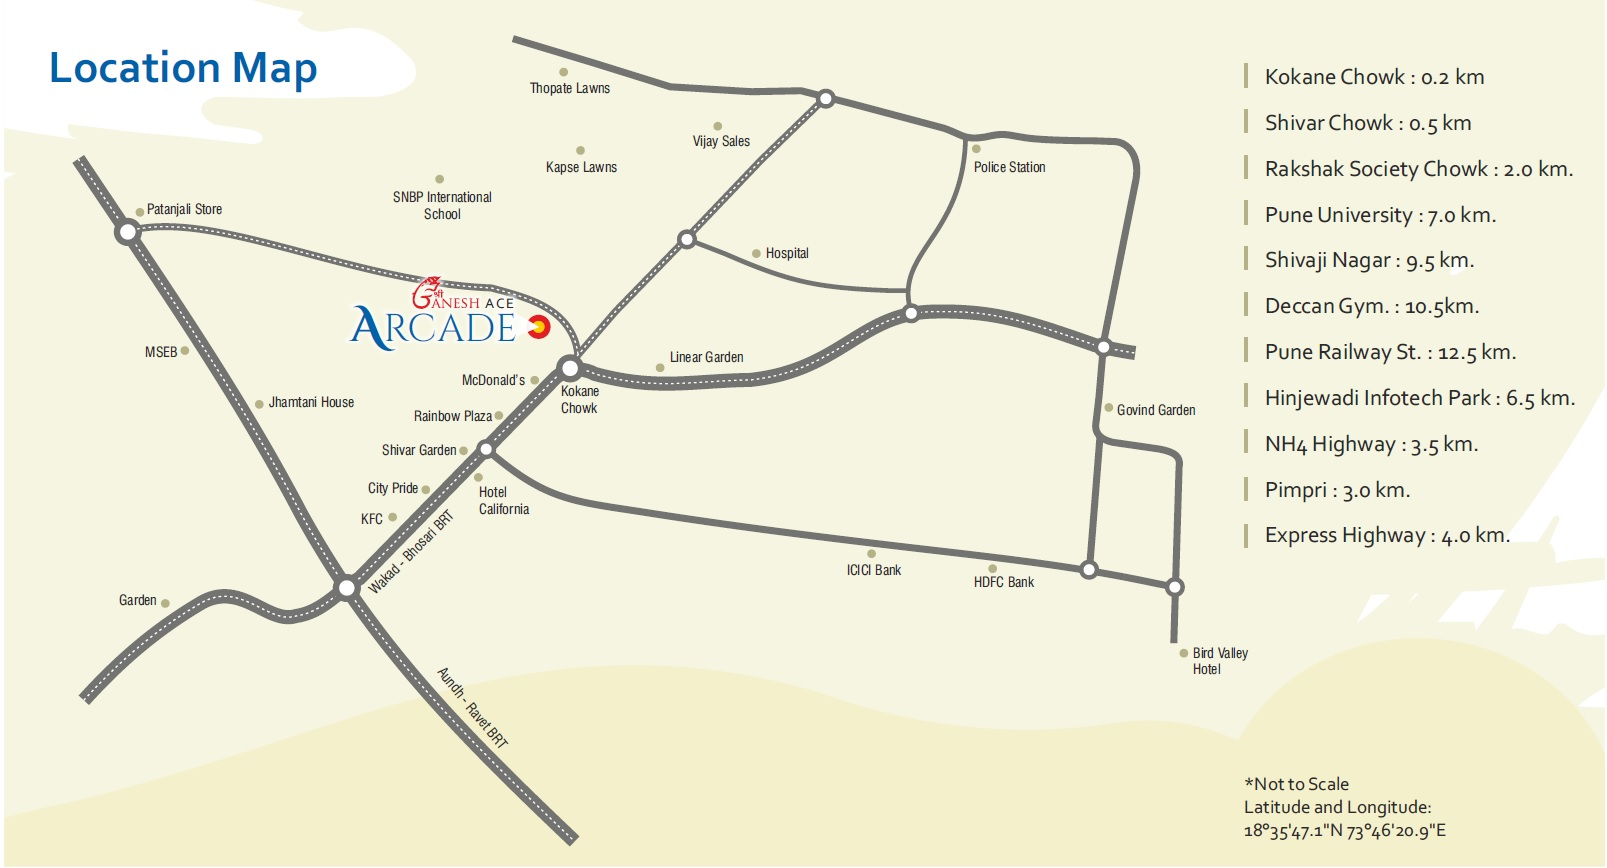 Ganesh-ace-arcade-location